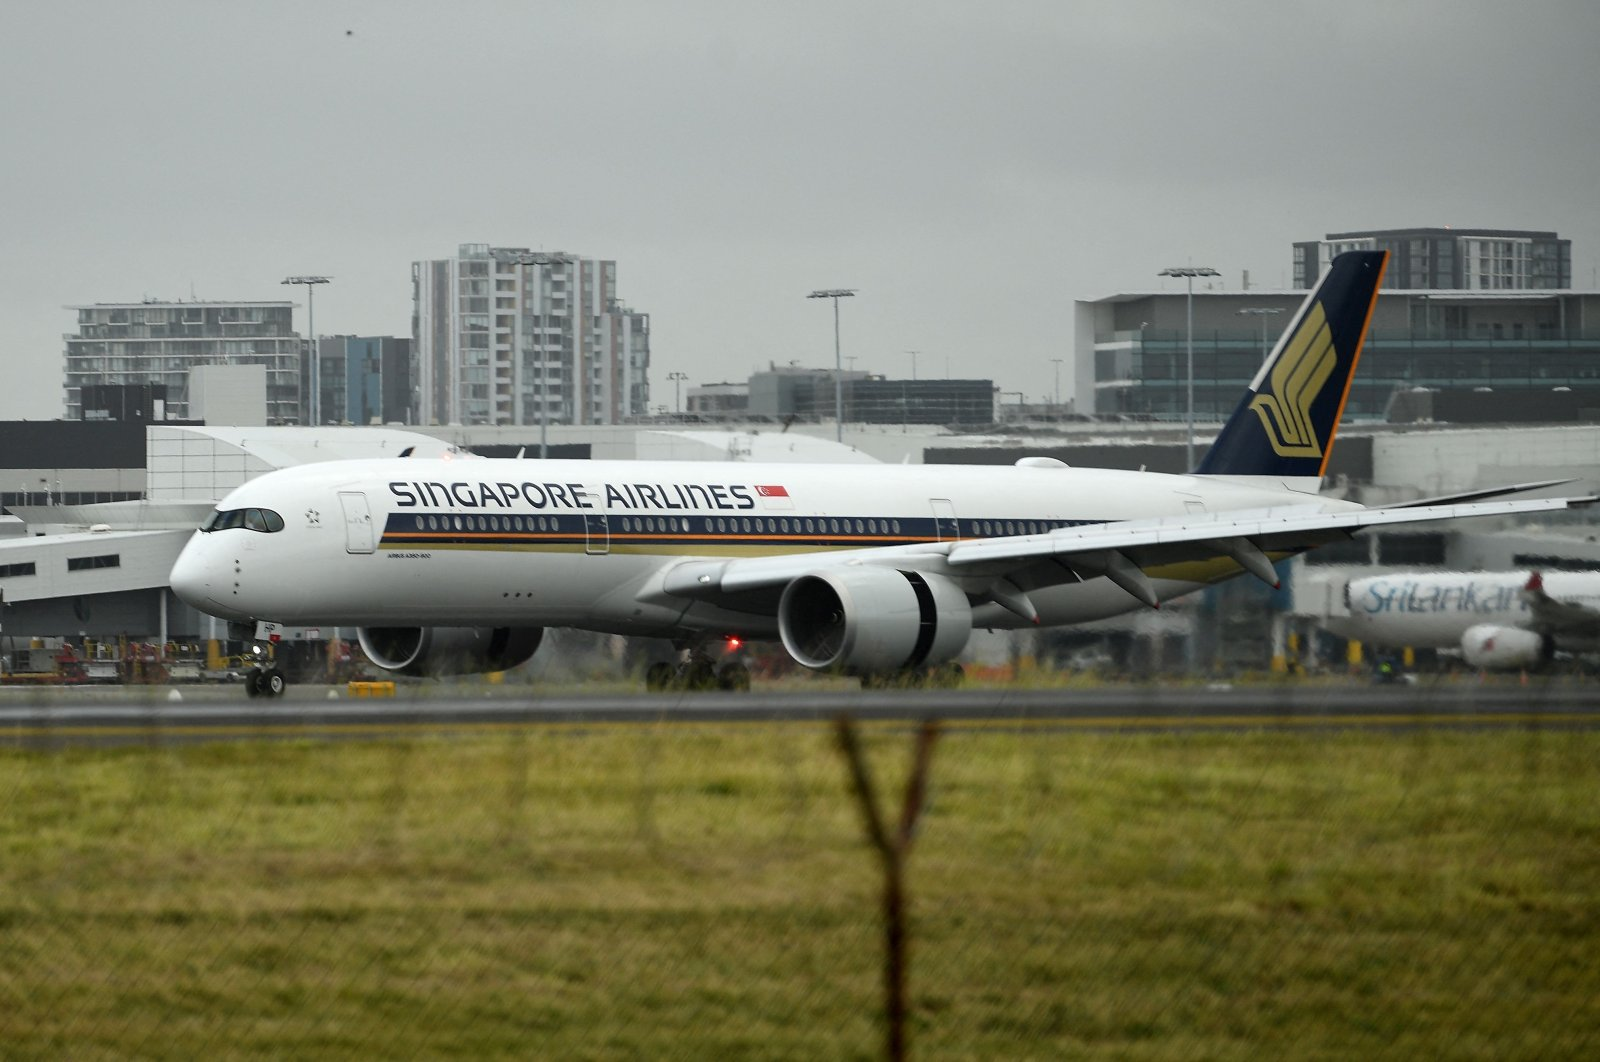 A Singapore Airlines passenger jet lands at Sydney International Airport, in Syrdney, Australia, May 6, 2021. (AFP Photo)